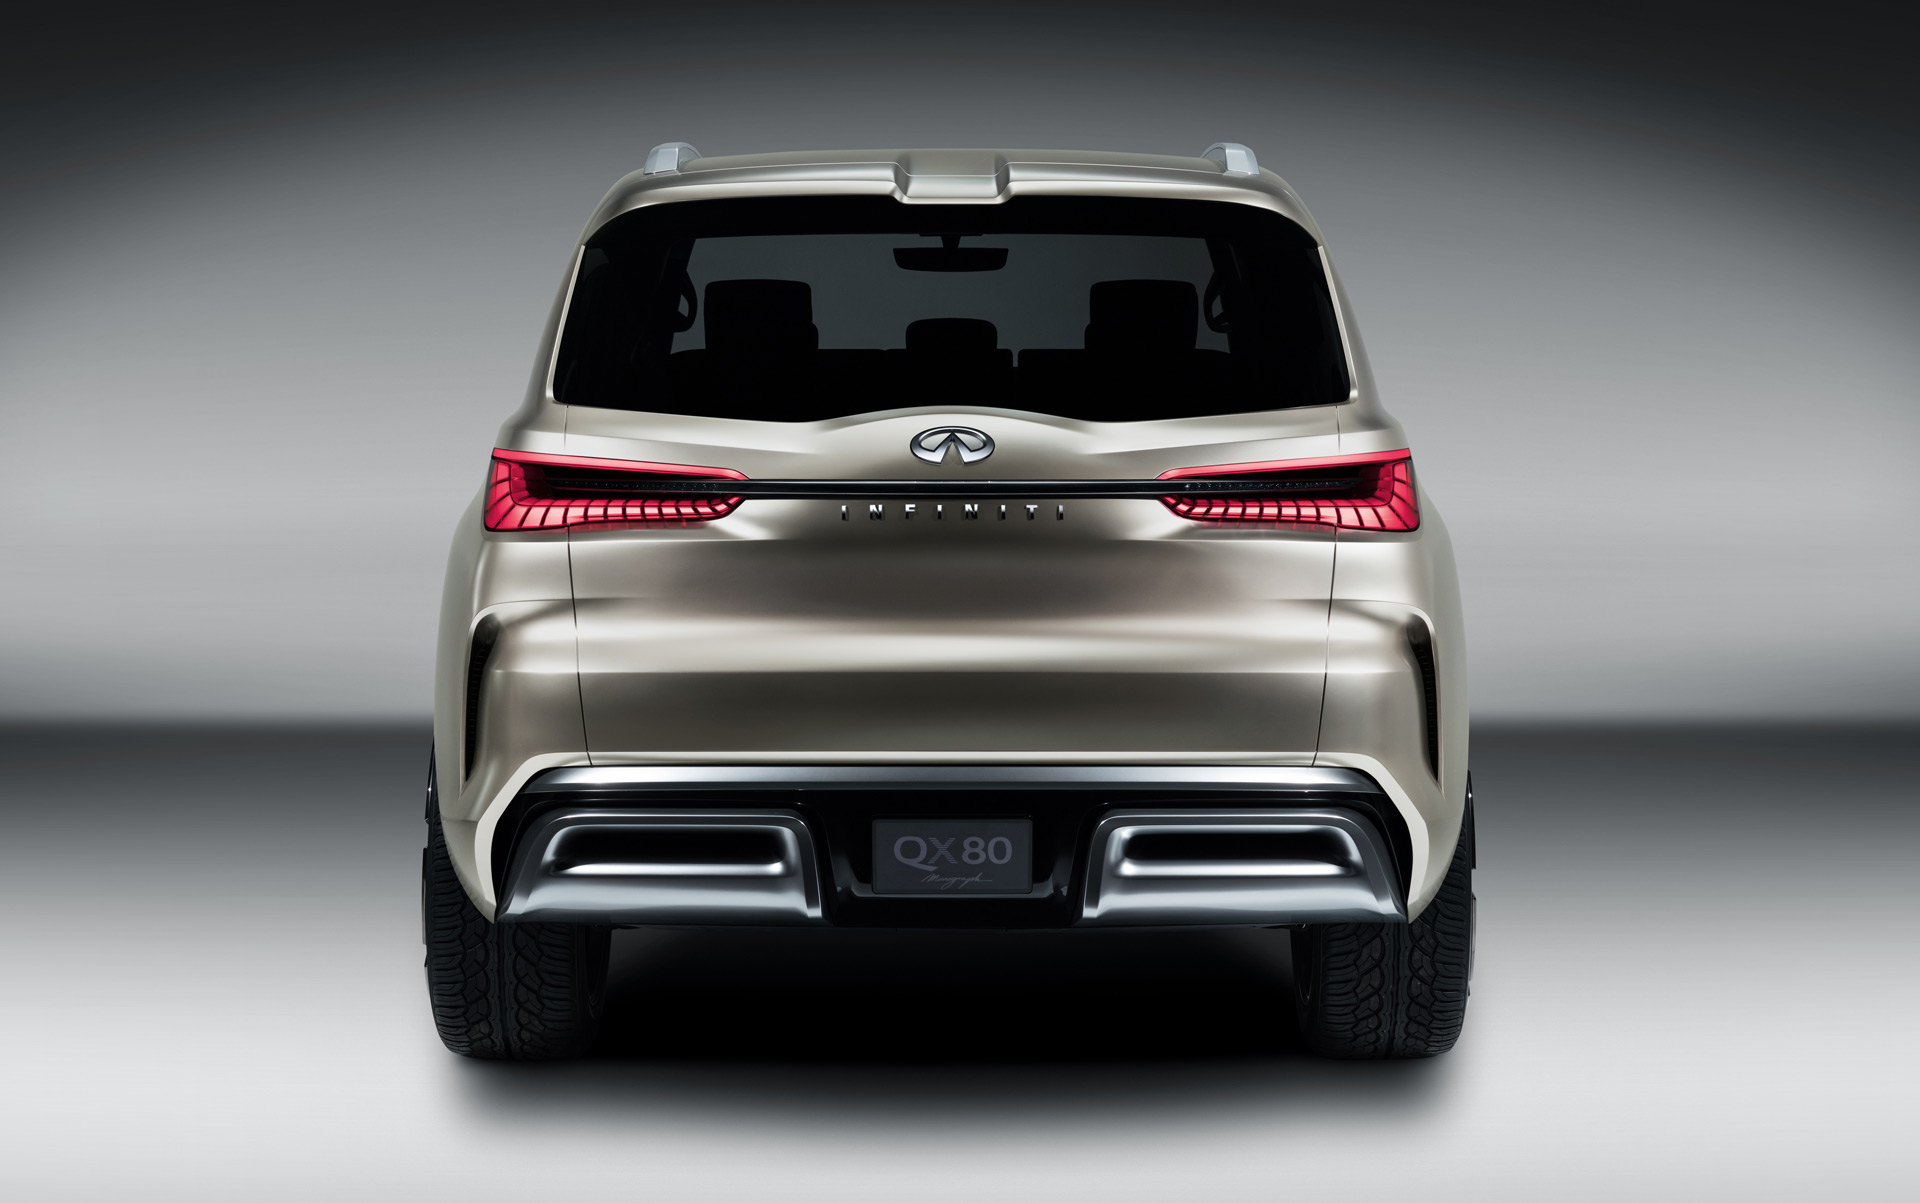 Redesigned Infiniti QX80 to keep current model s